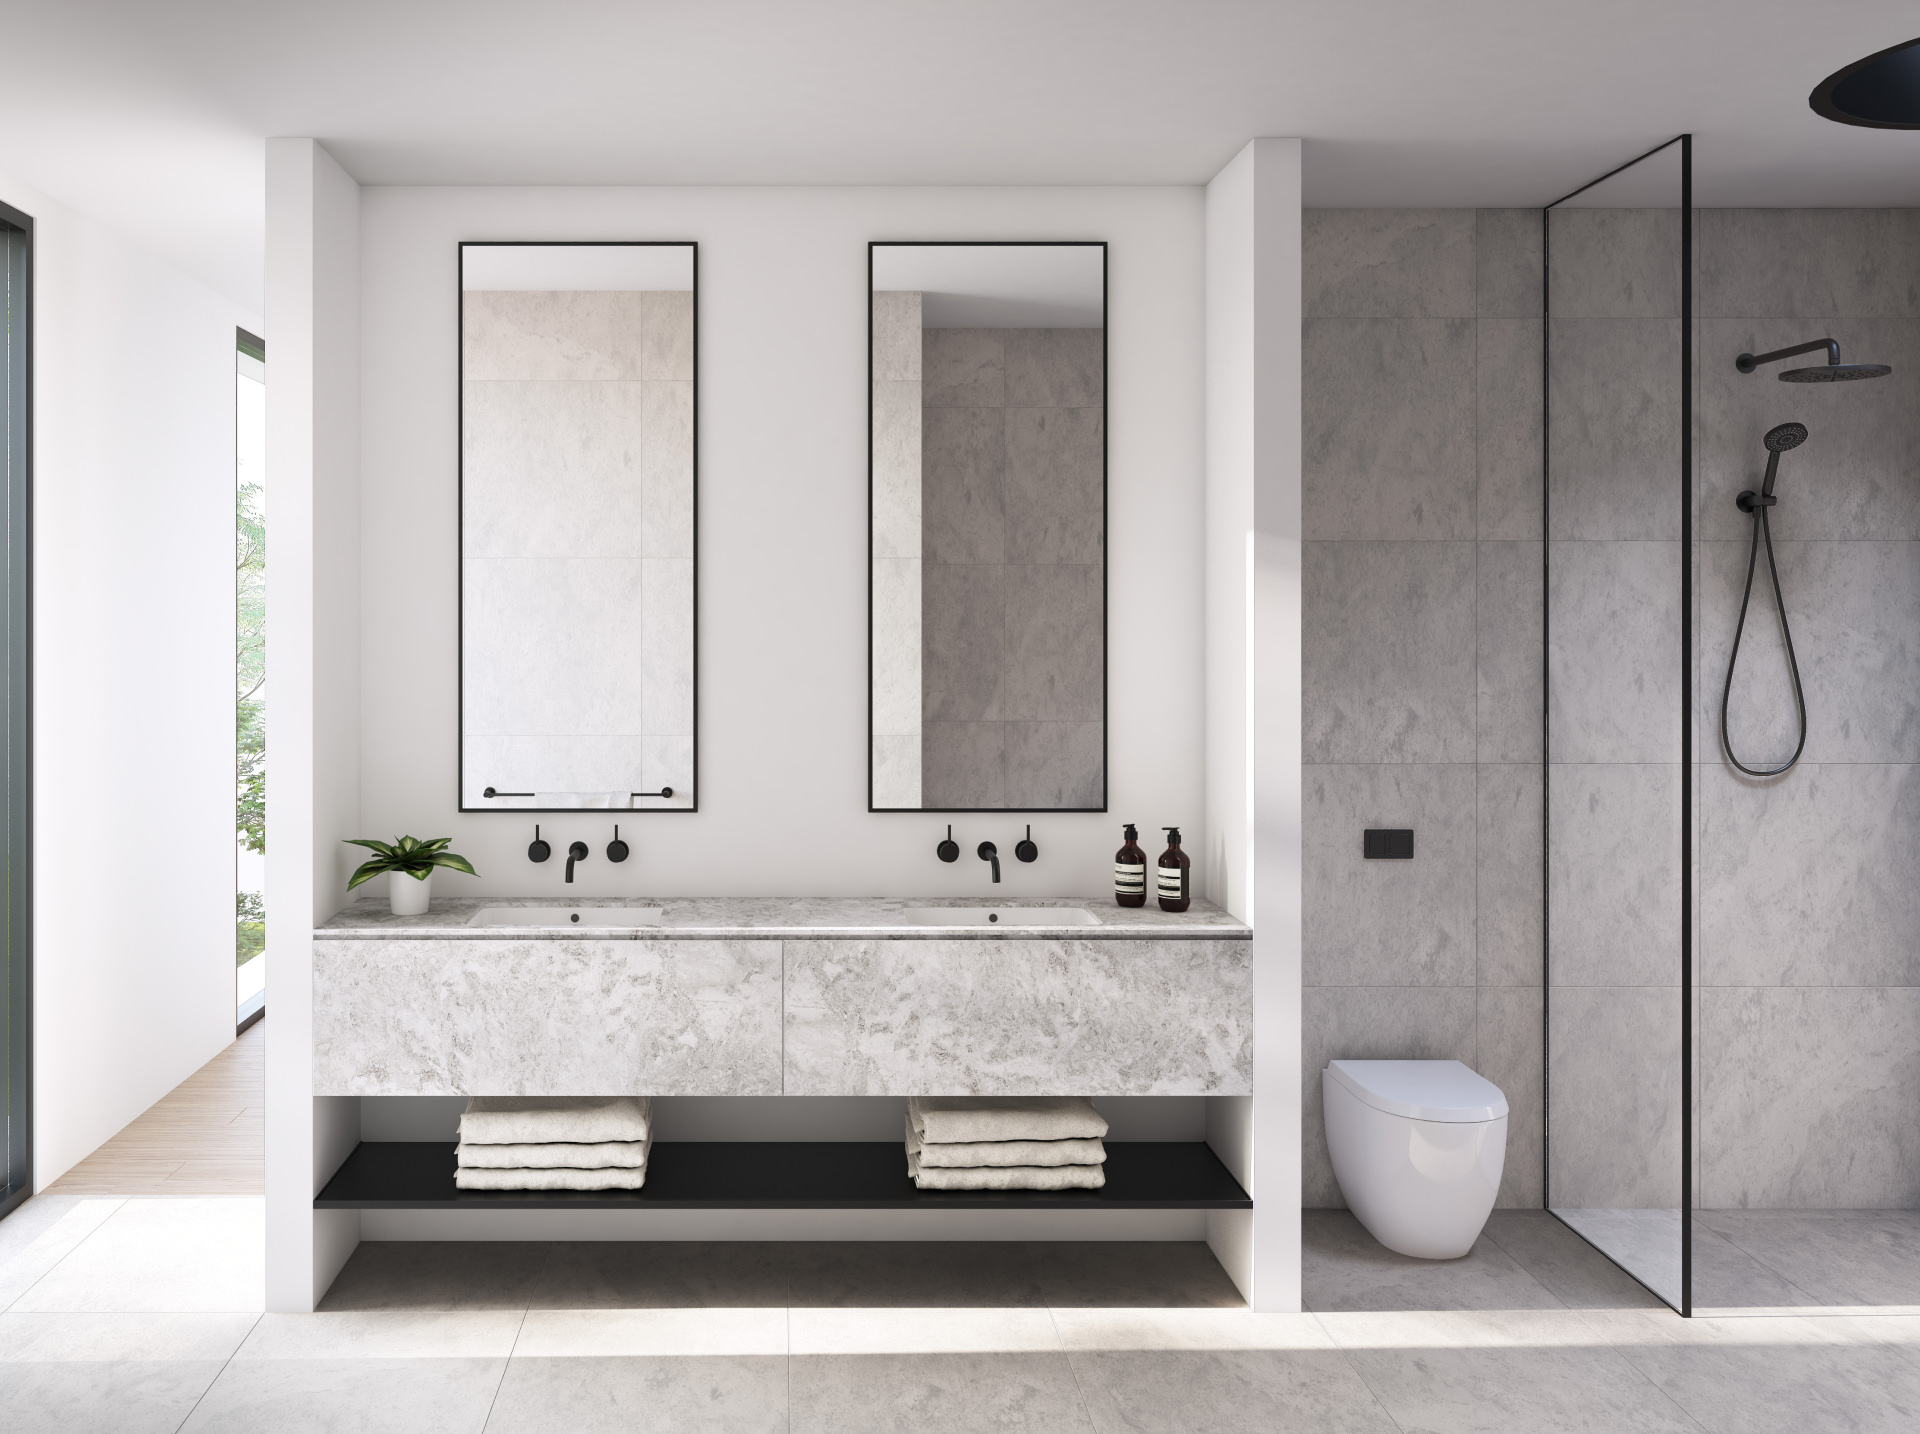 Cera Stribley Architecture Interior Design Renwick interior bathroom